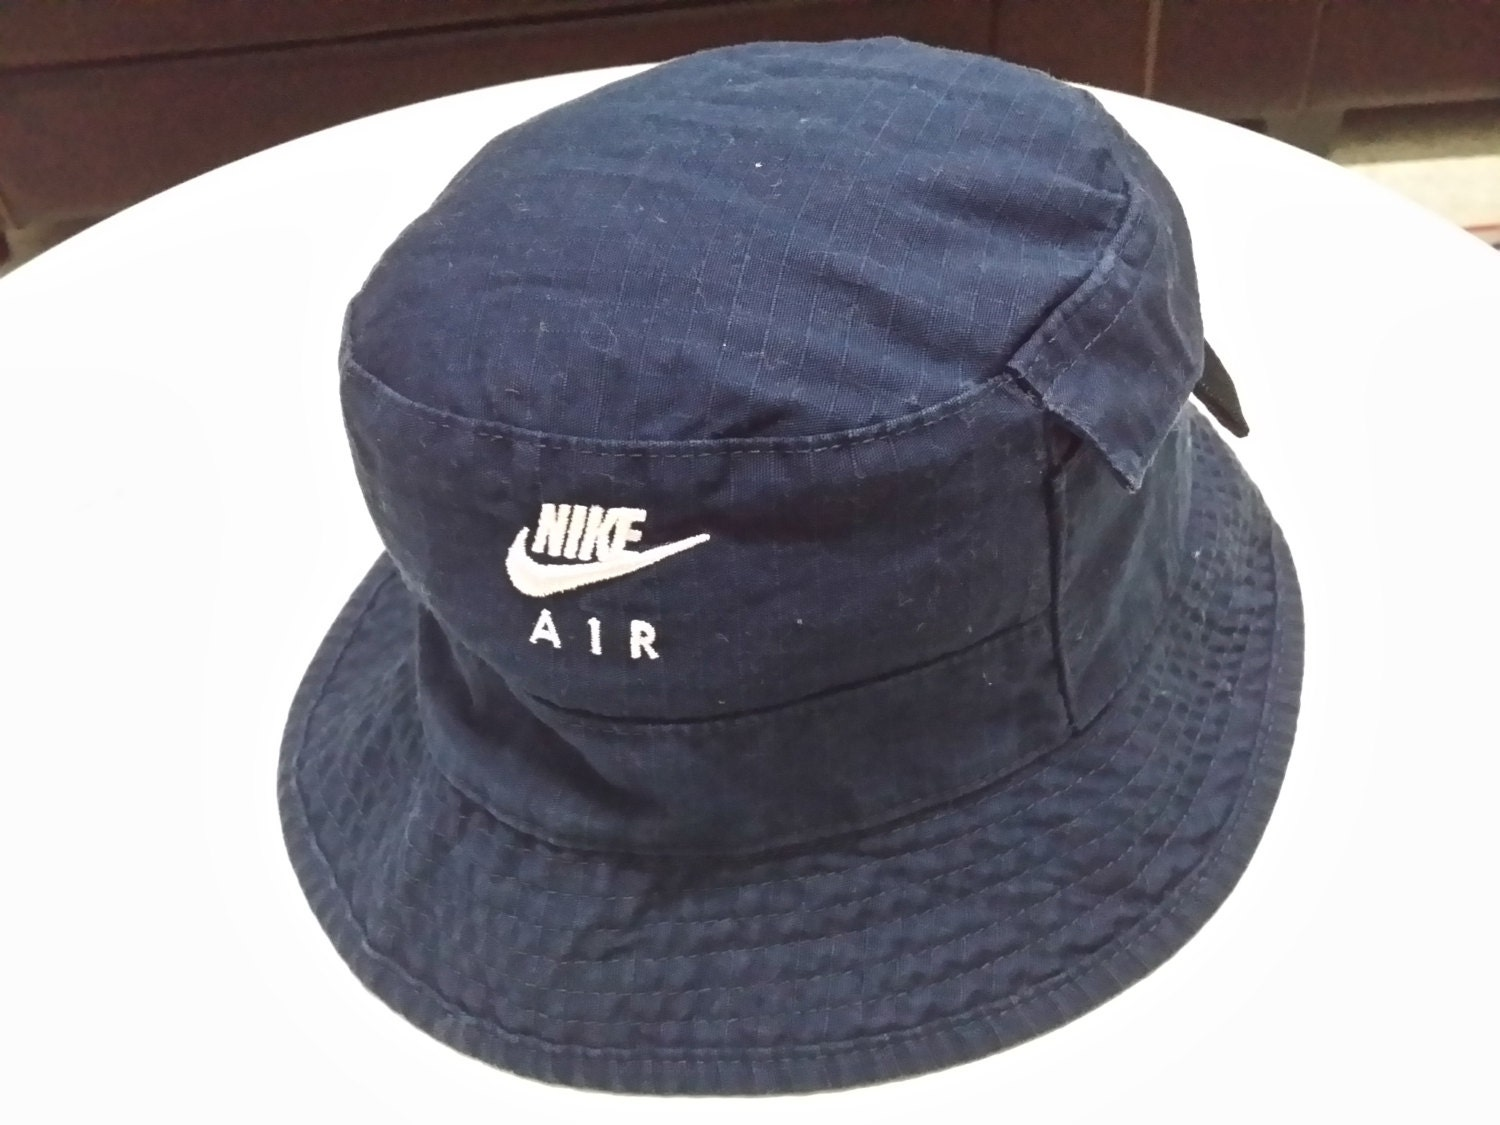 Sale Casual Bucket Hats Nike Air Embroidered Spellout Round Cap With Small  Pocket 84f923d742e